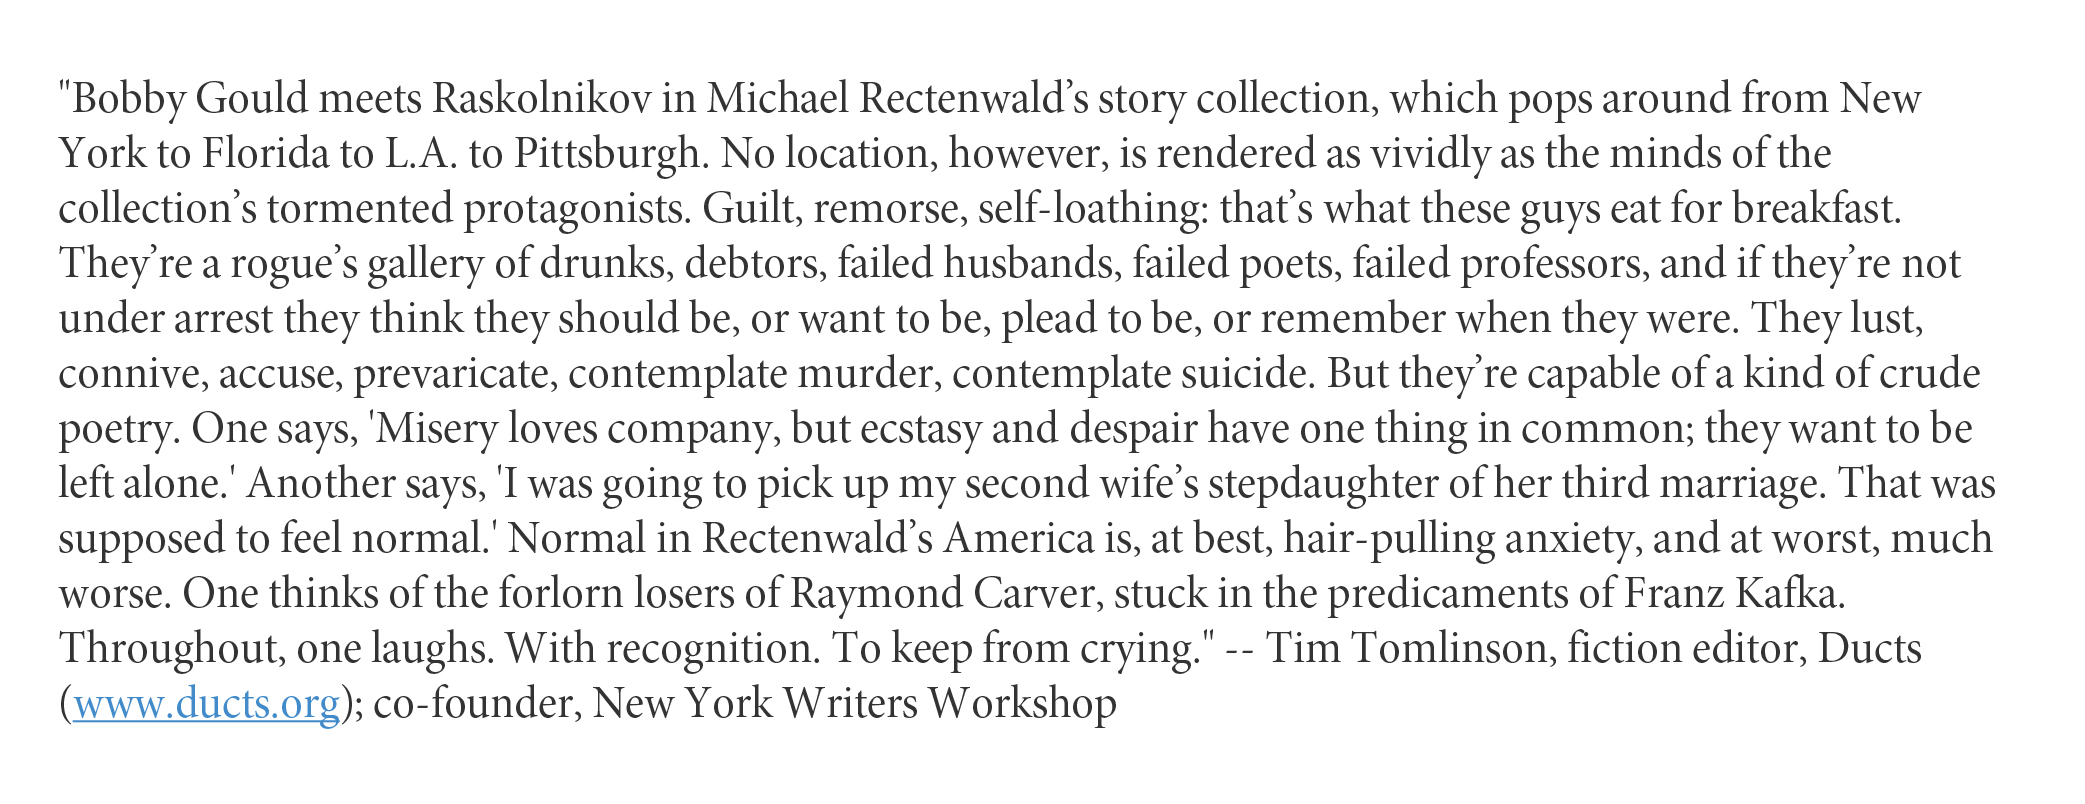 The Thief and Other Stories - by Michael Rectenwald